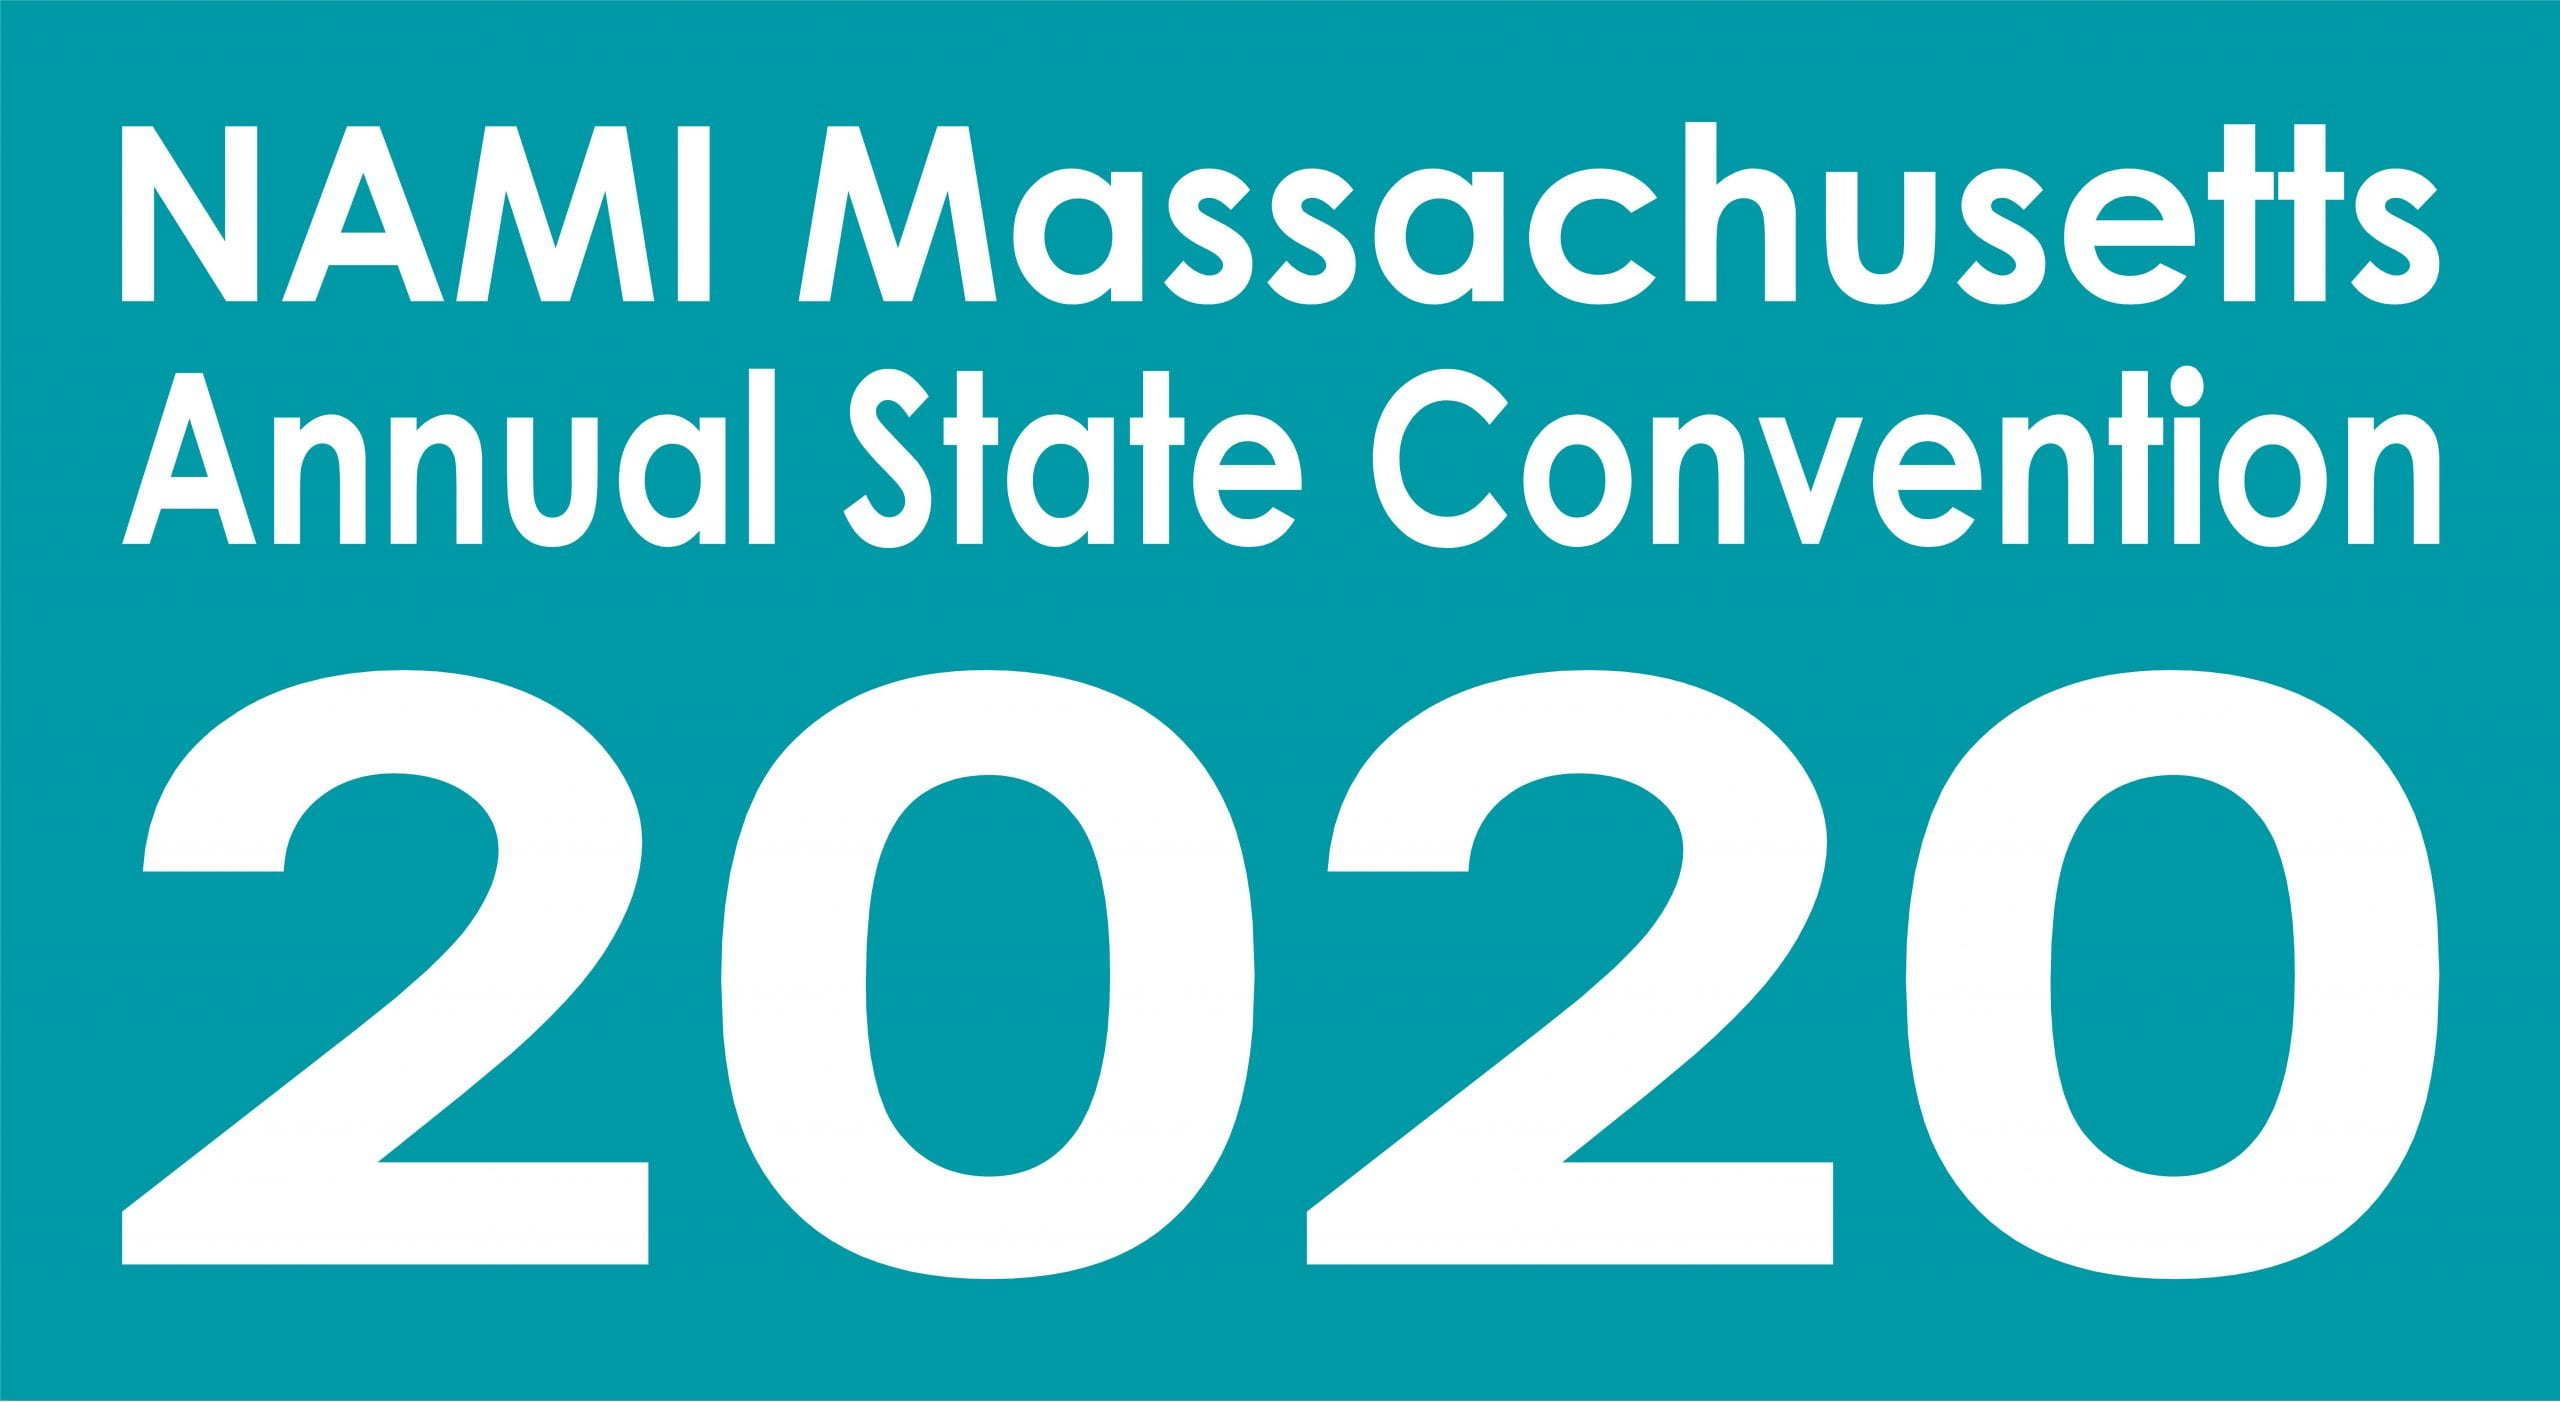 NAMI Massachusetts Annual State Convention 2020 in teal